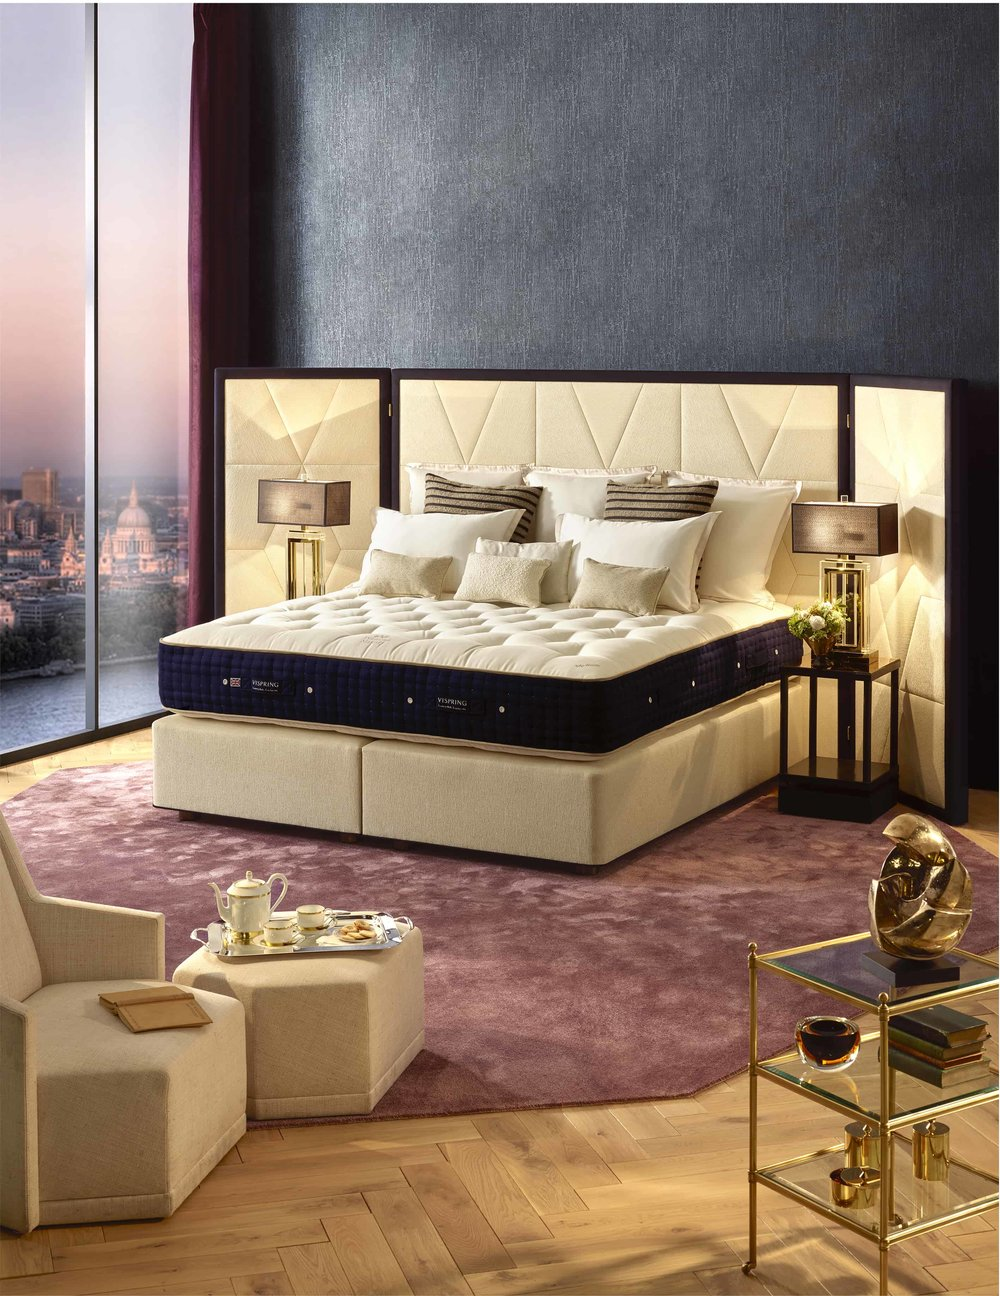 vispring-Diamond-Majesty-luxury-mattress.jpg